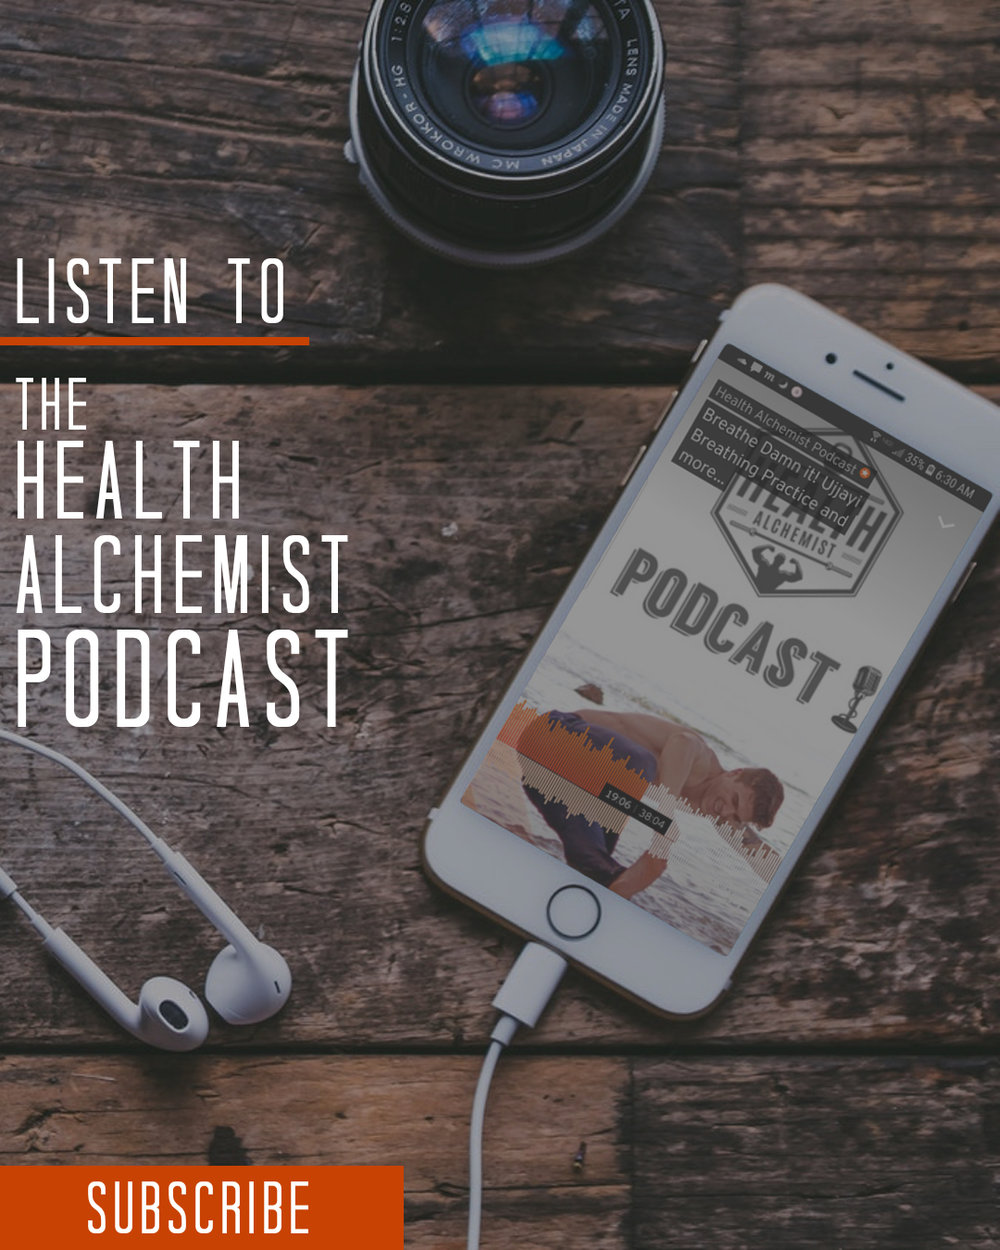 Health Alchemist Podcast - health alchemist training.com